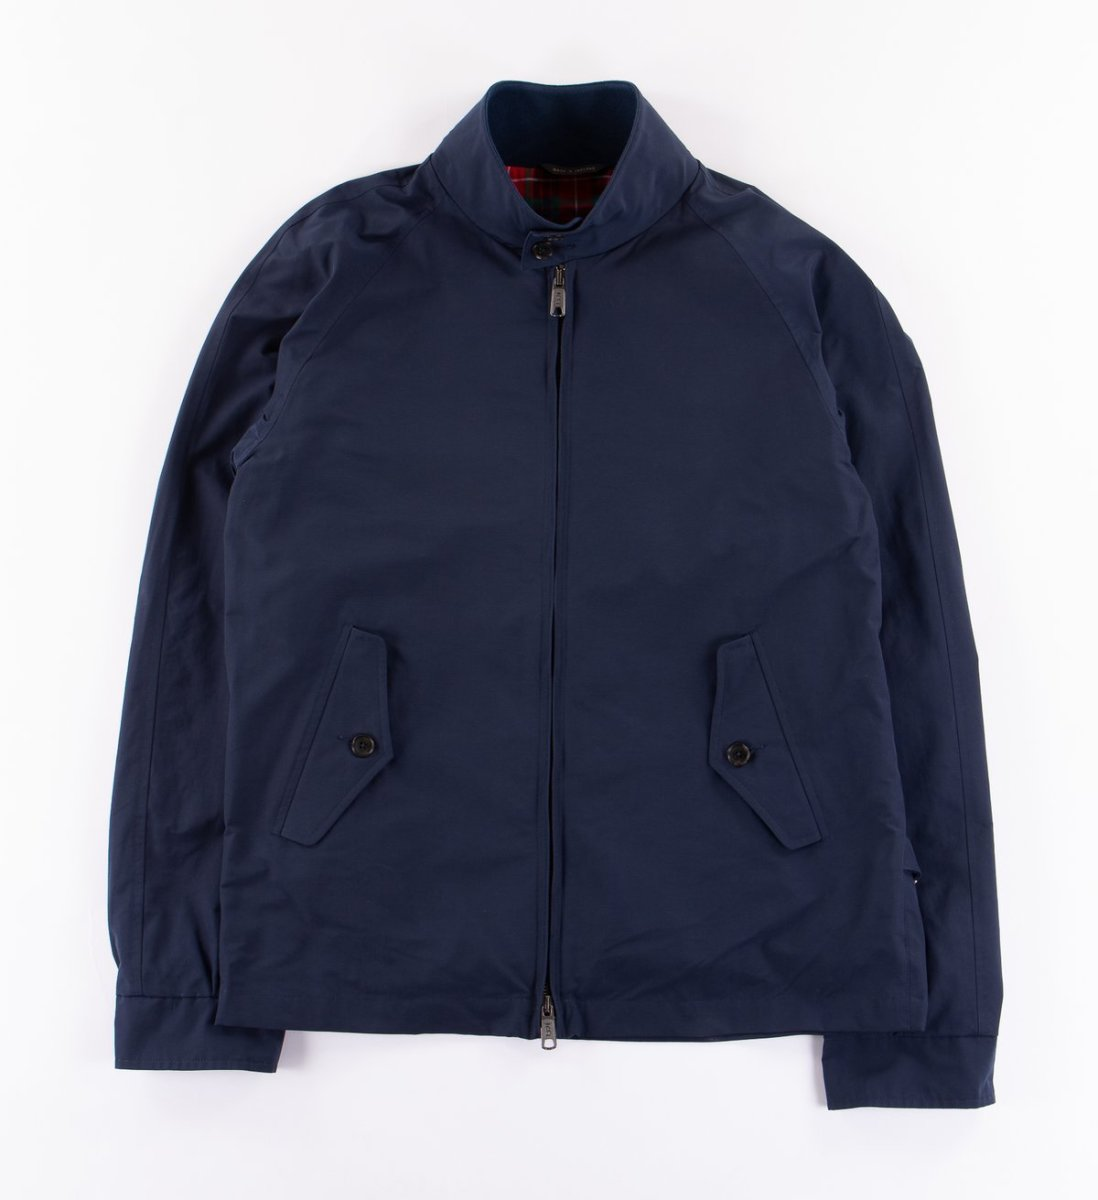 Engineered Garments x Baracuta Harrington